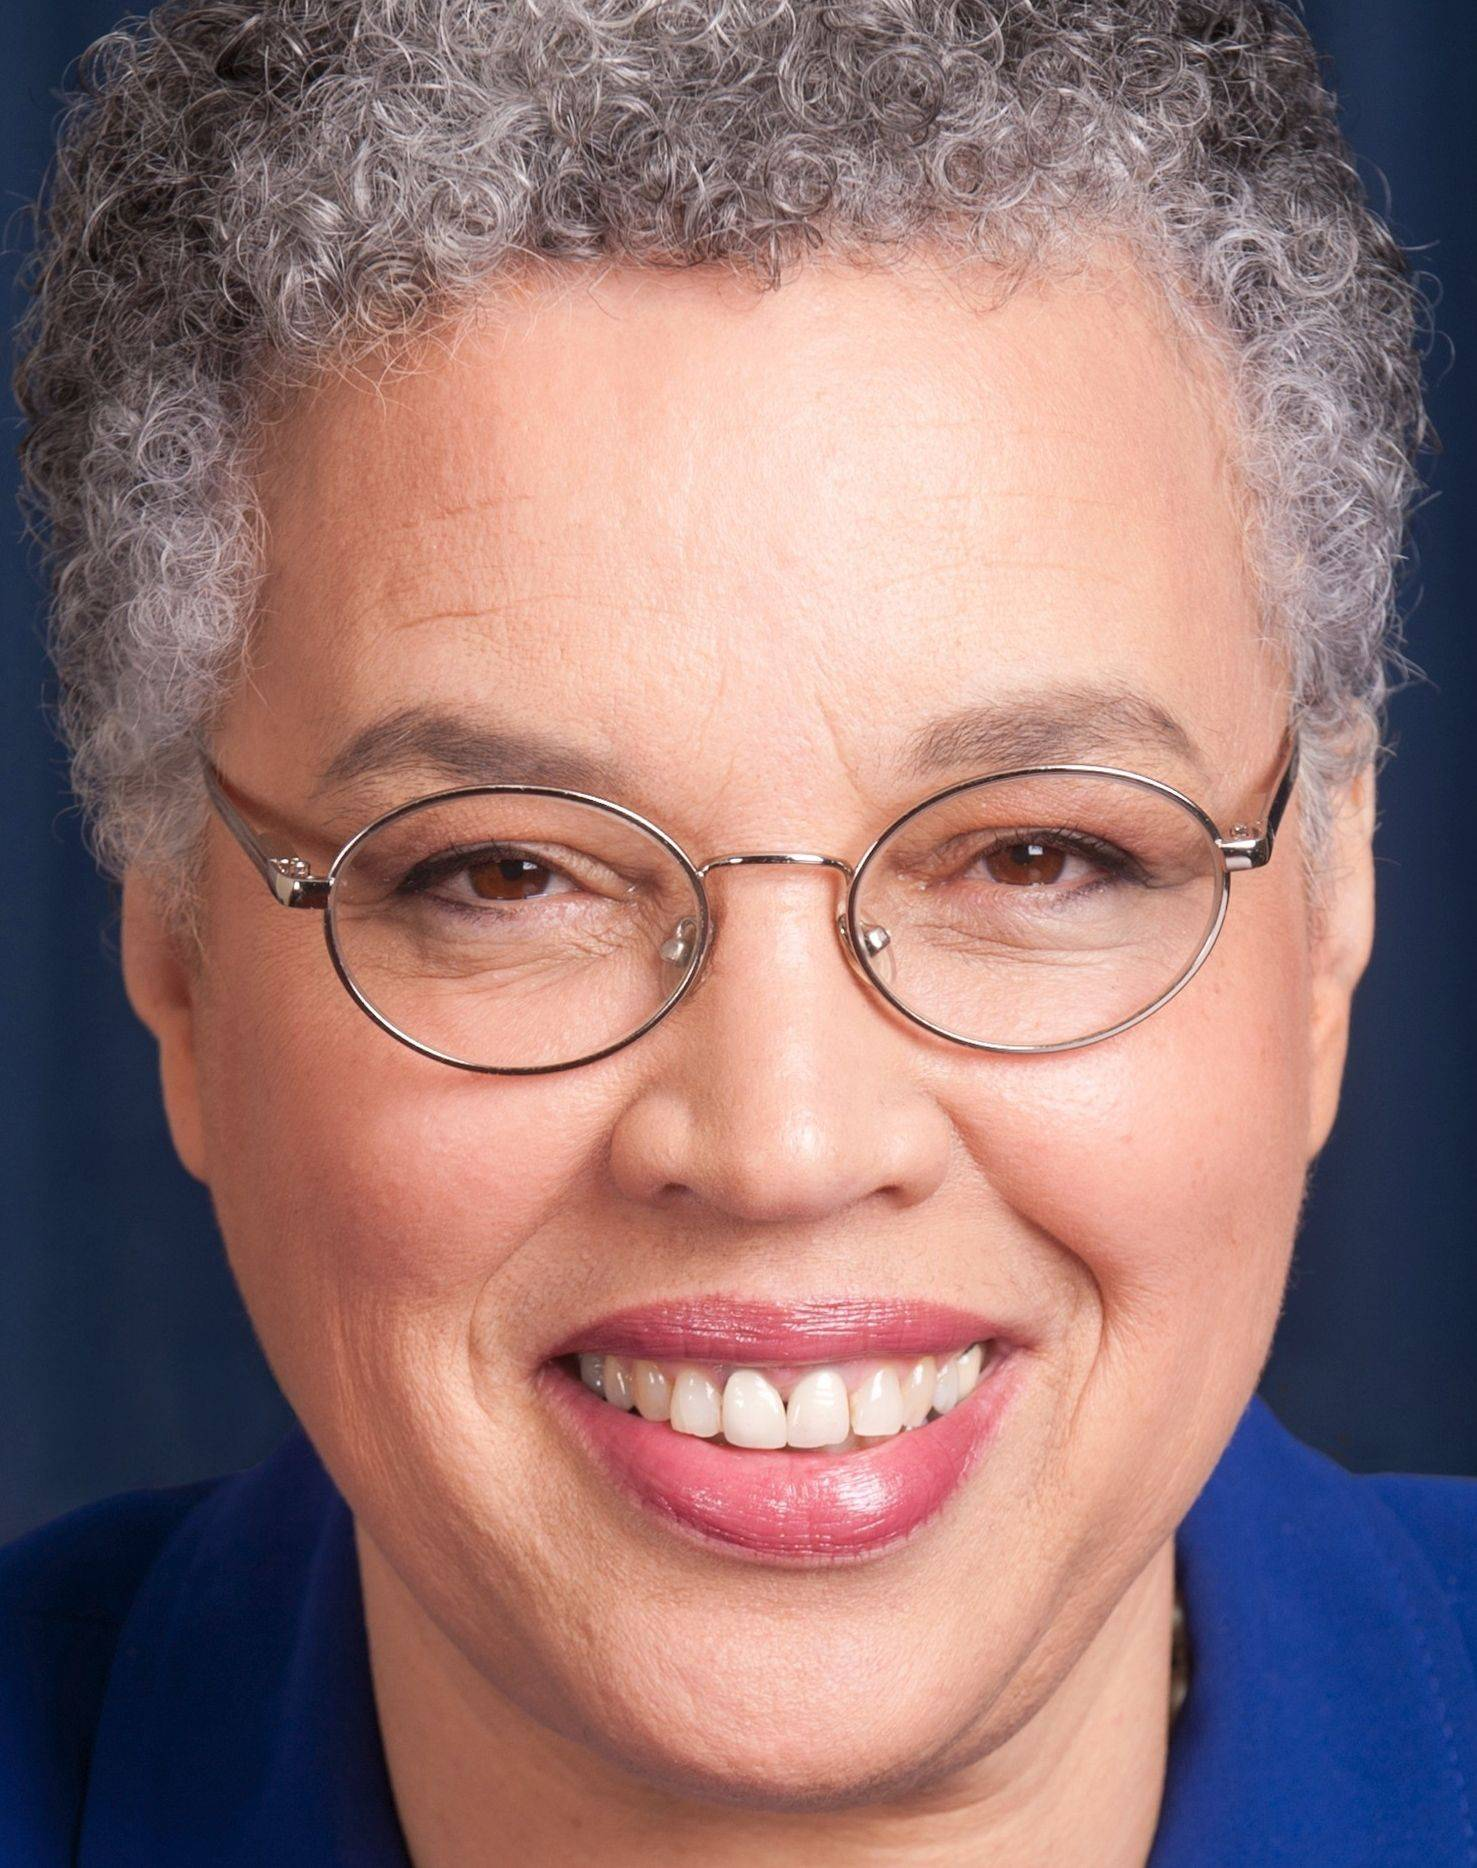 Preckwinkle: Other county leaders resist ideas to reduce jail costs